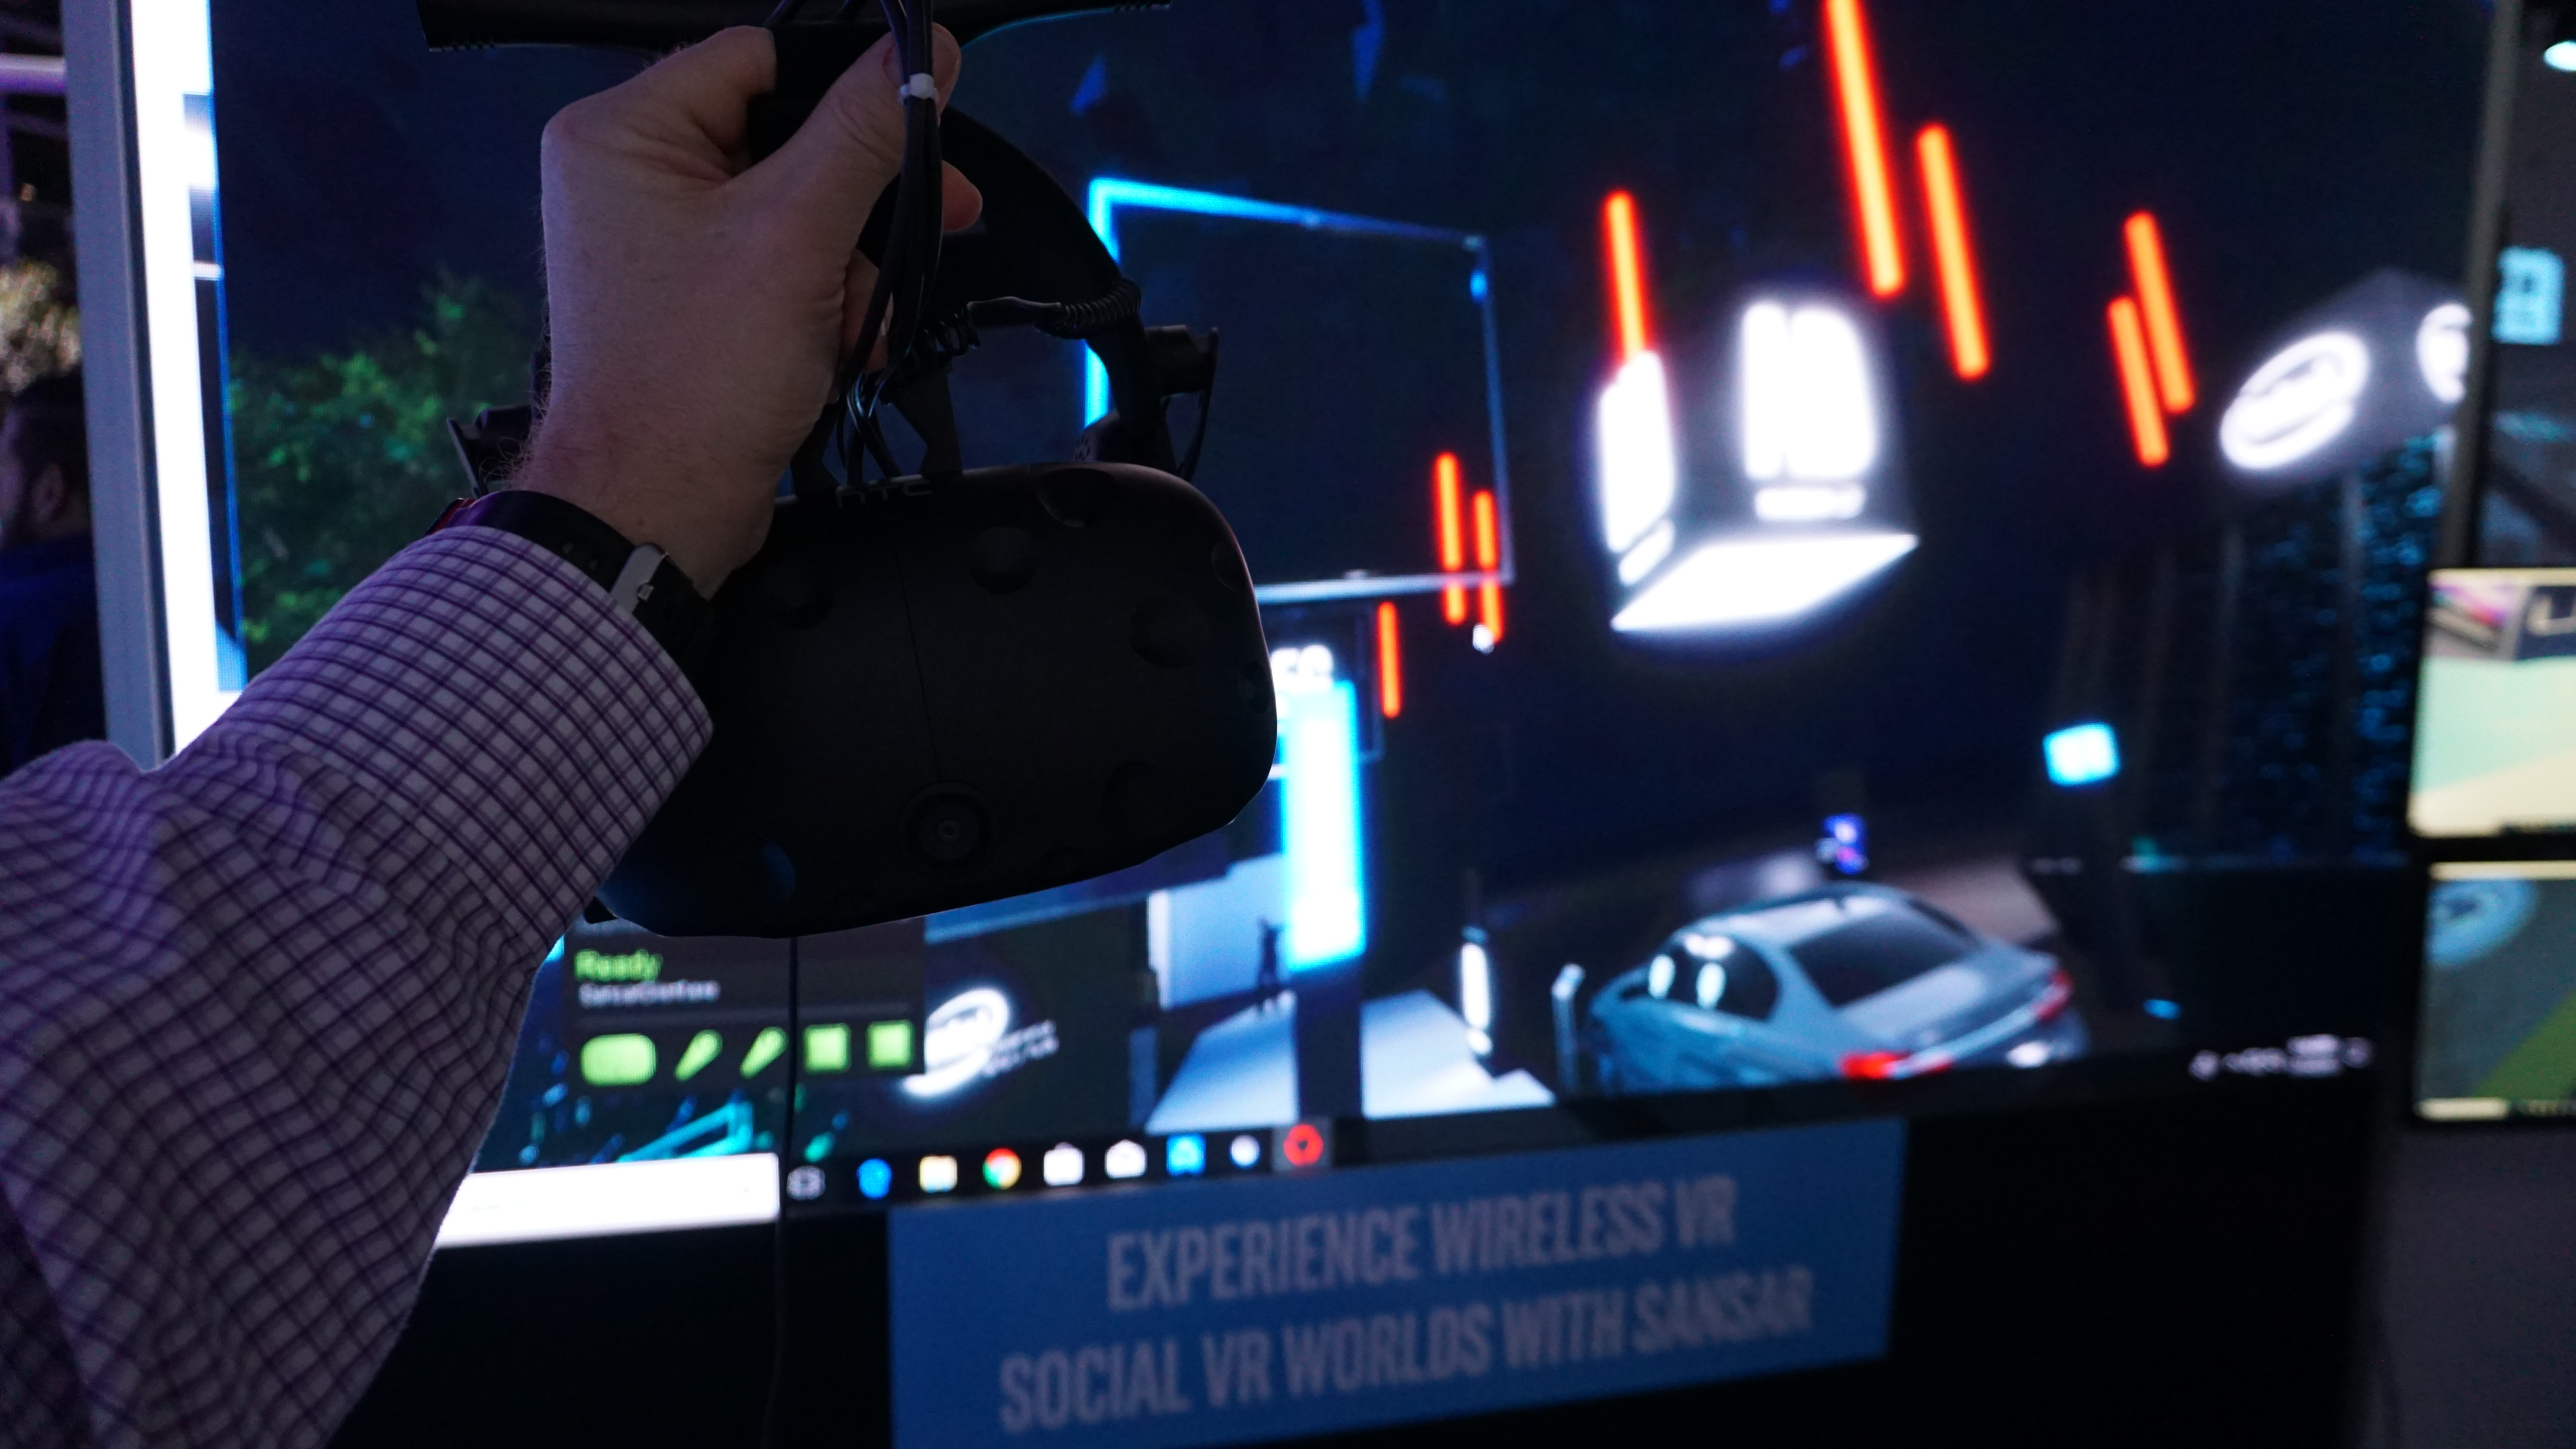 HTC VIVE versus VIVE PRO virtual reality, and wireless